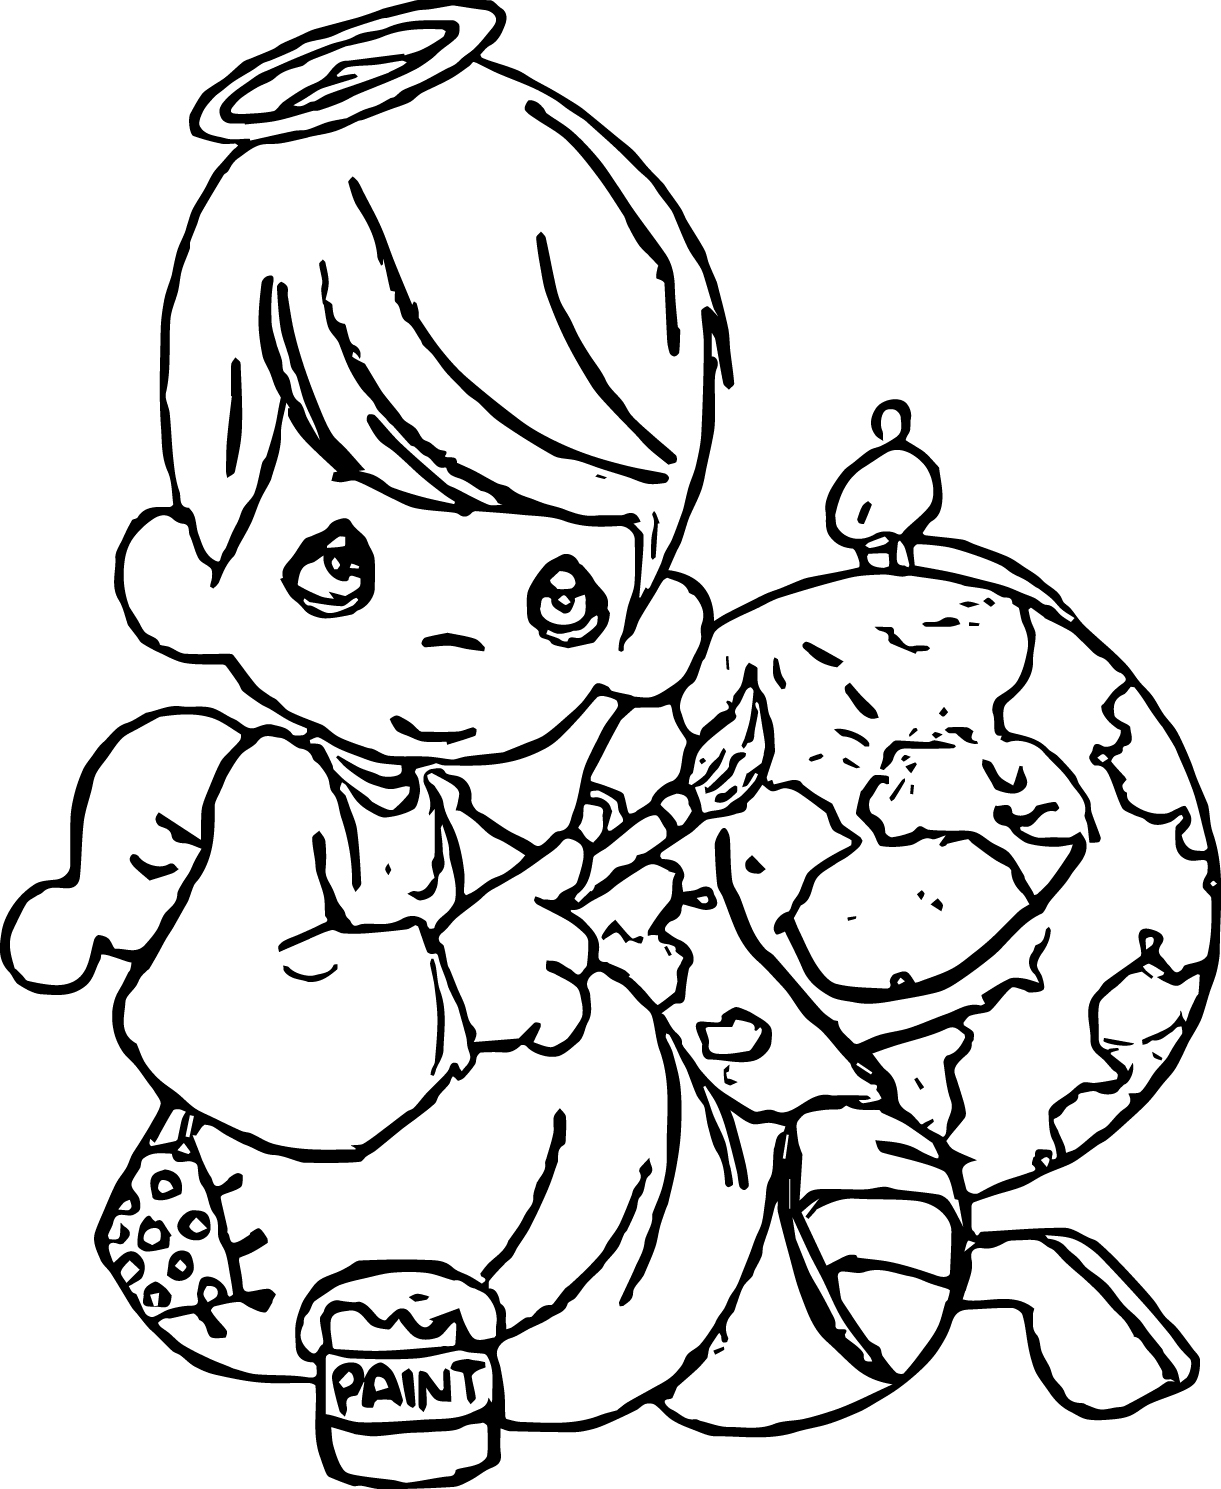 Precious Moments Paint Coloring Page